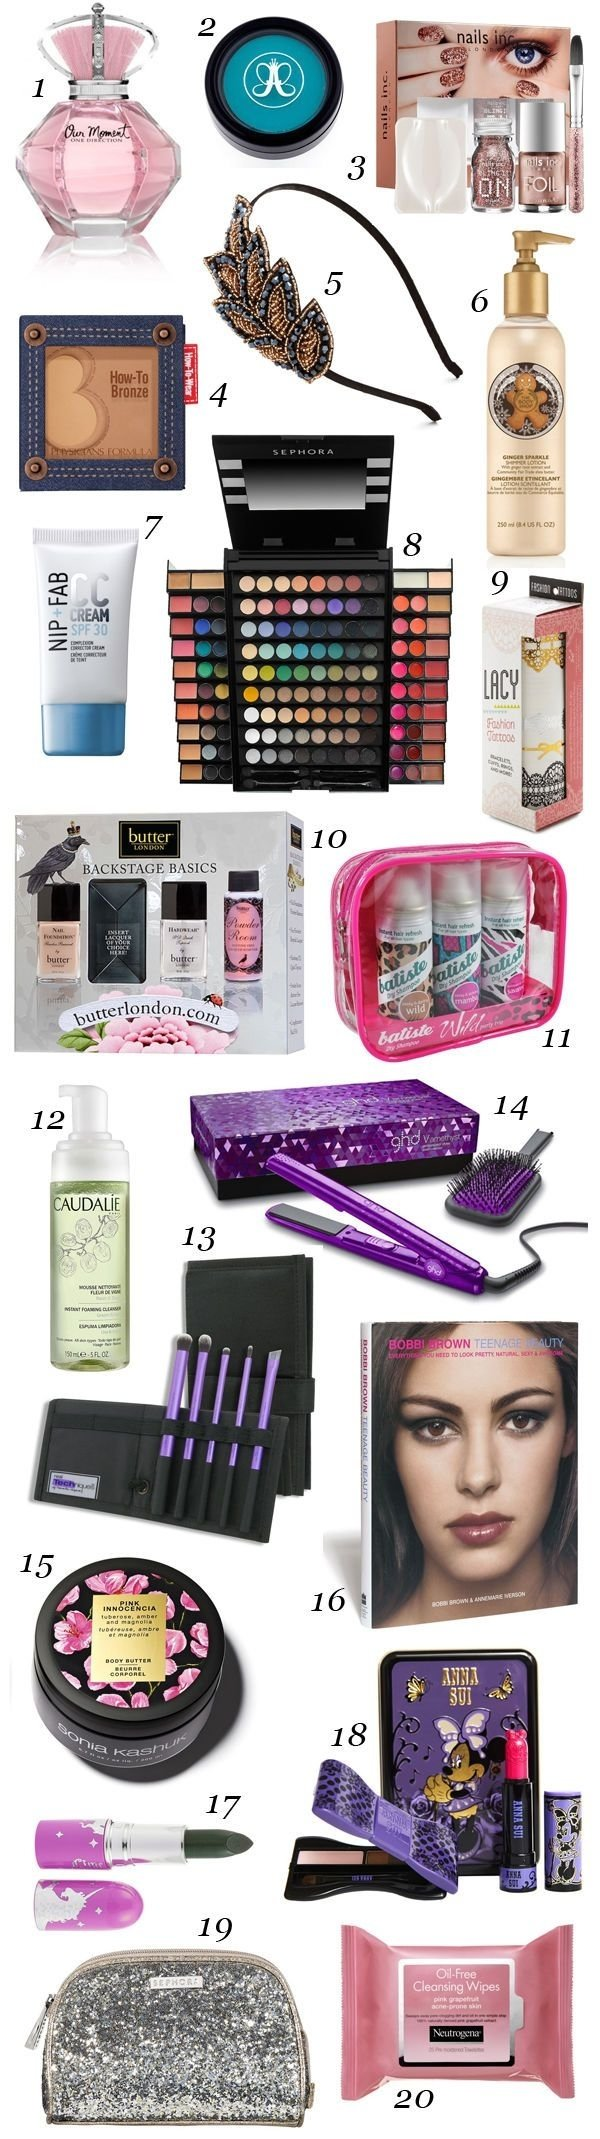 10 Stylish Gift Ideas For 14 Yr Old Girls 97 best christmas gifts for 14 year old girls images on pinterest 2020